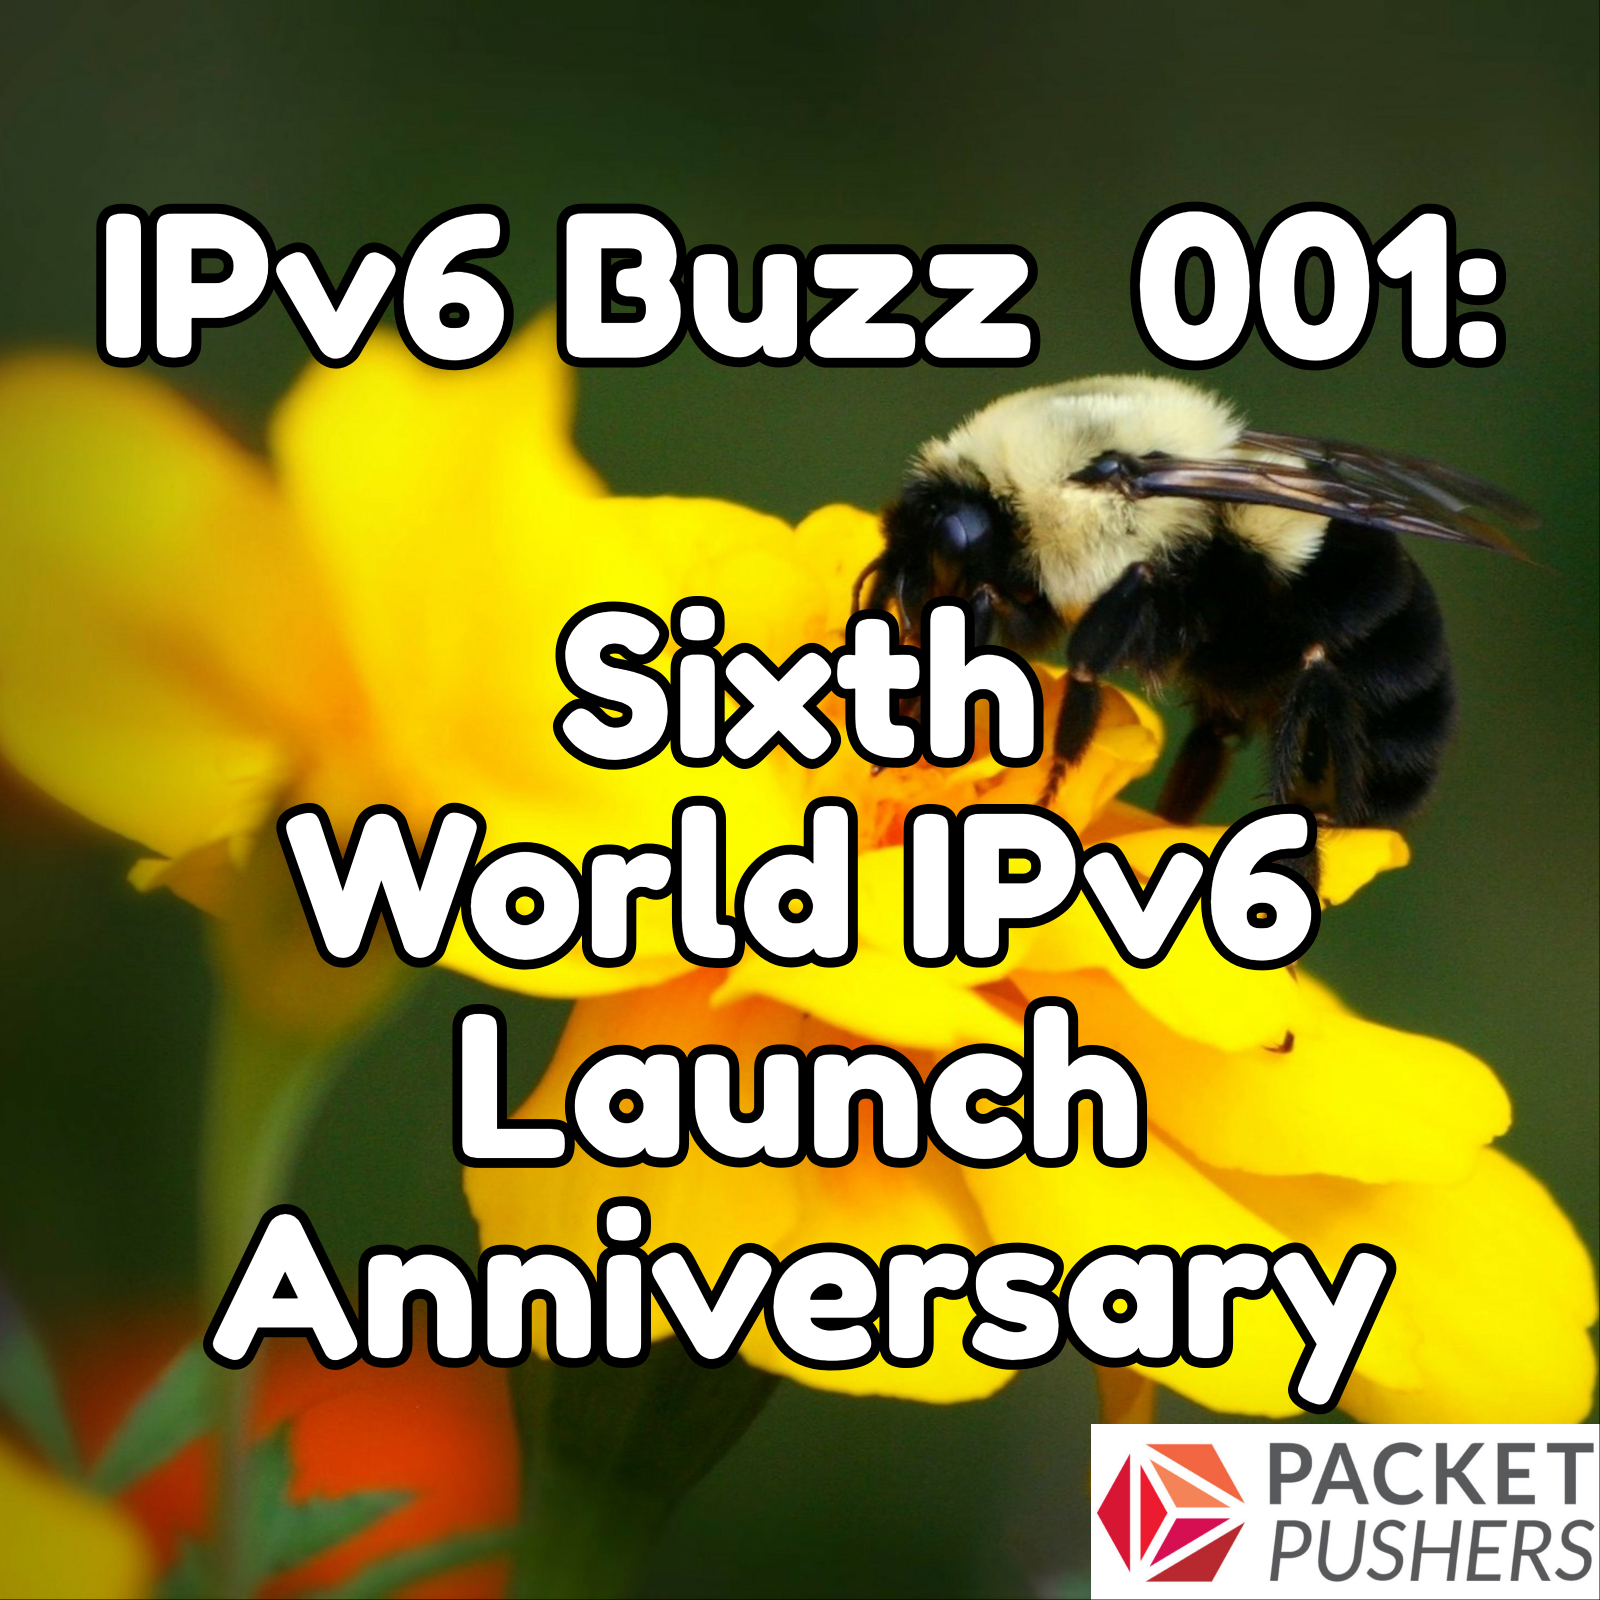 Sixth World IPv6 Launch Anniversary